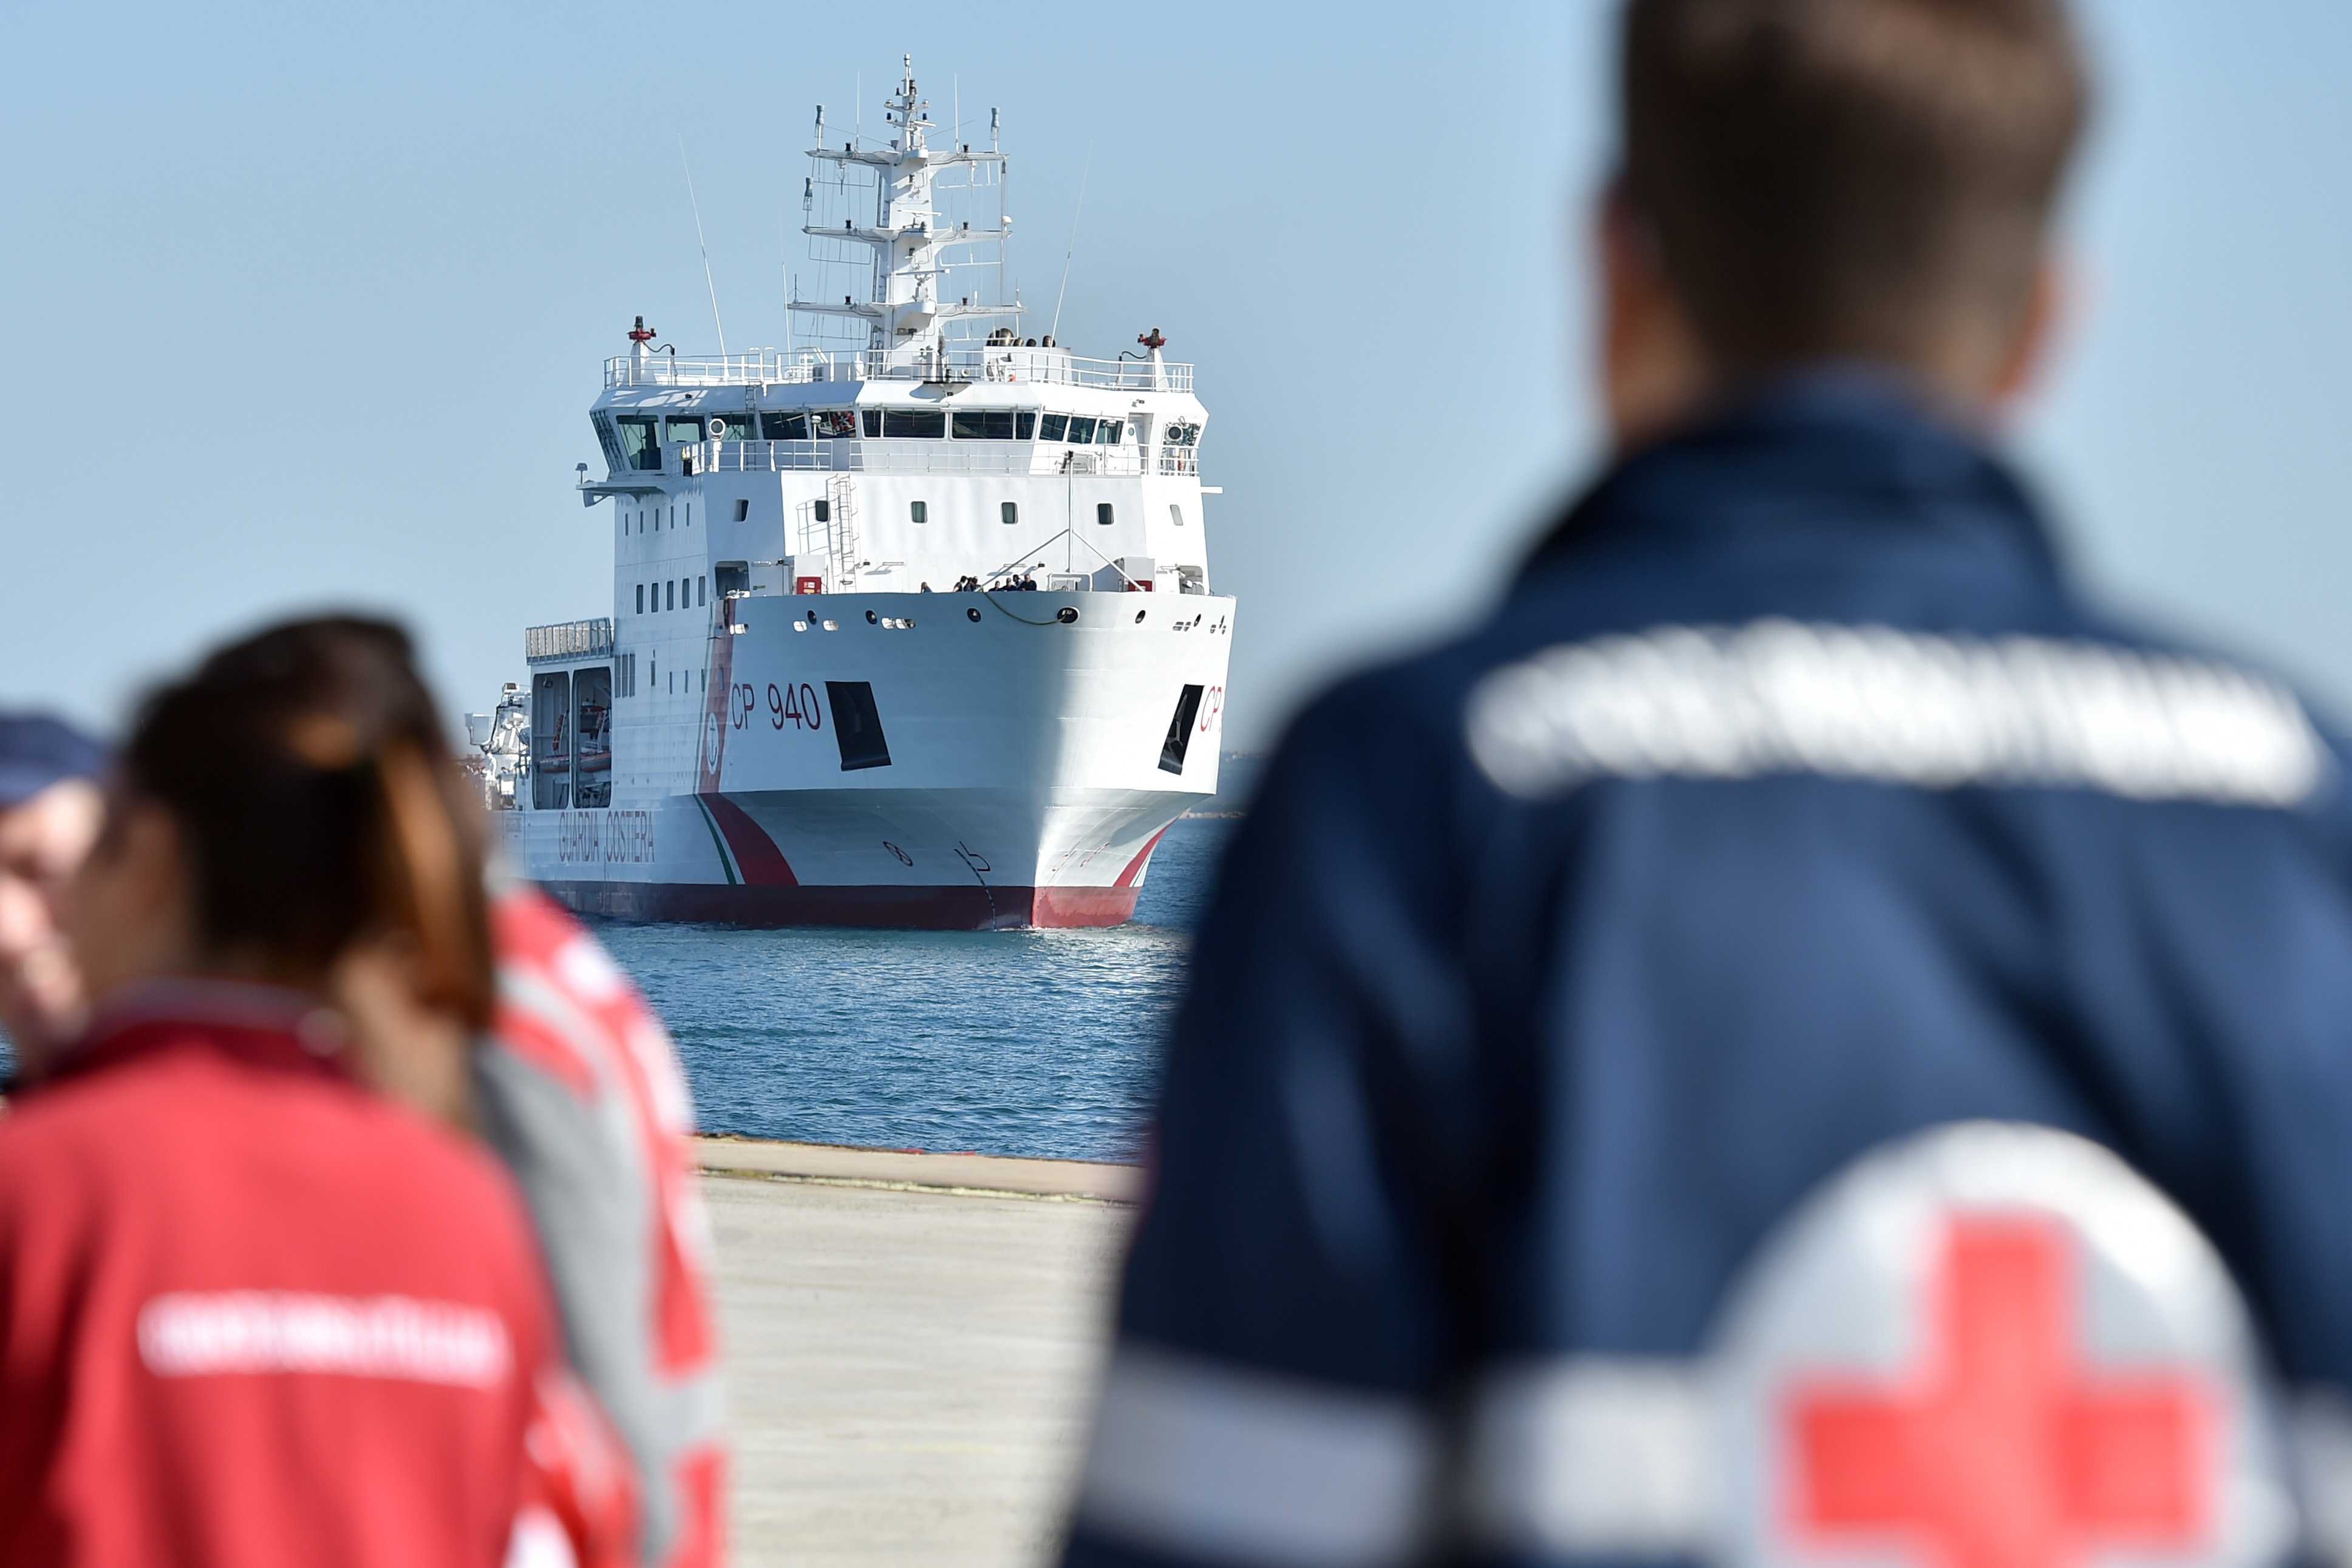 The Italian Coast Guard ship  Dattilo , carrying hundreds of migrants rescued in the Mediterranean Sea arrives at the Augusta harbor, near Siracusa, Sicily, Italy, April 16, 2015.